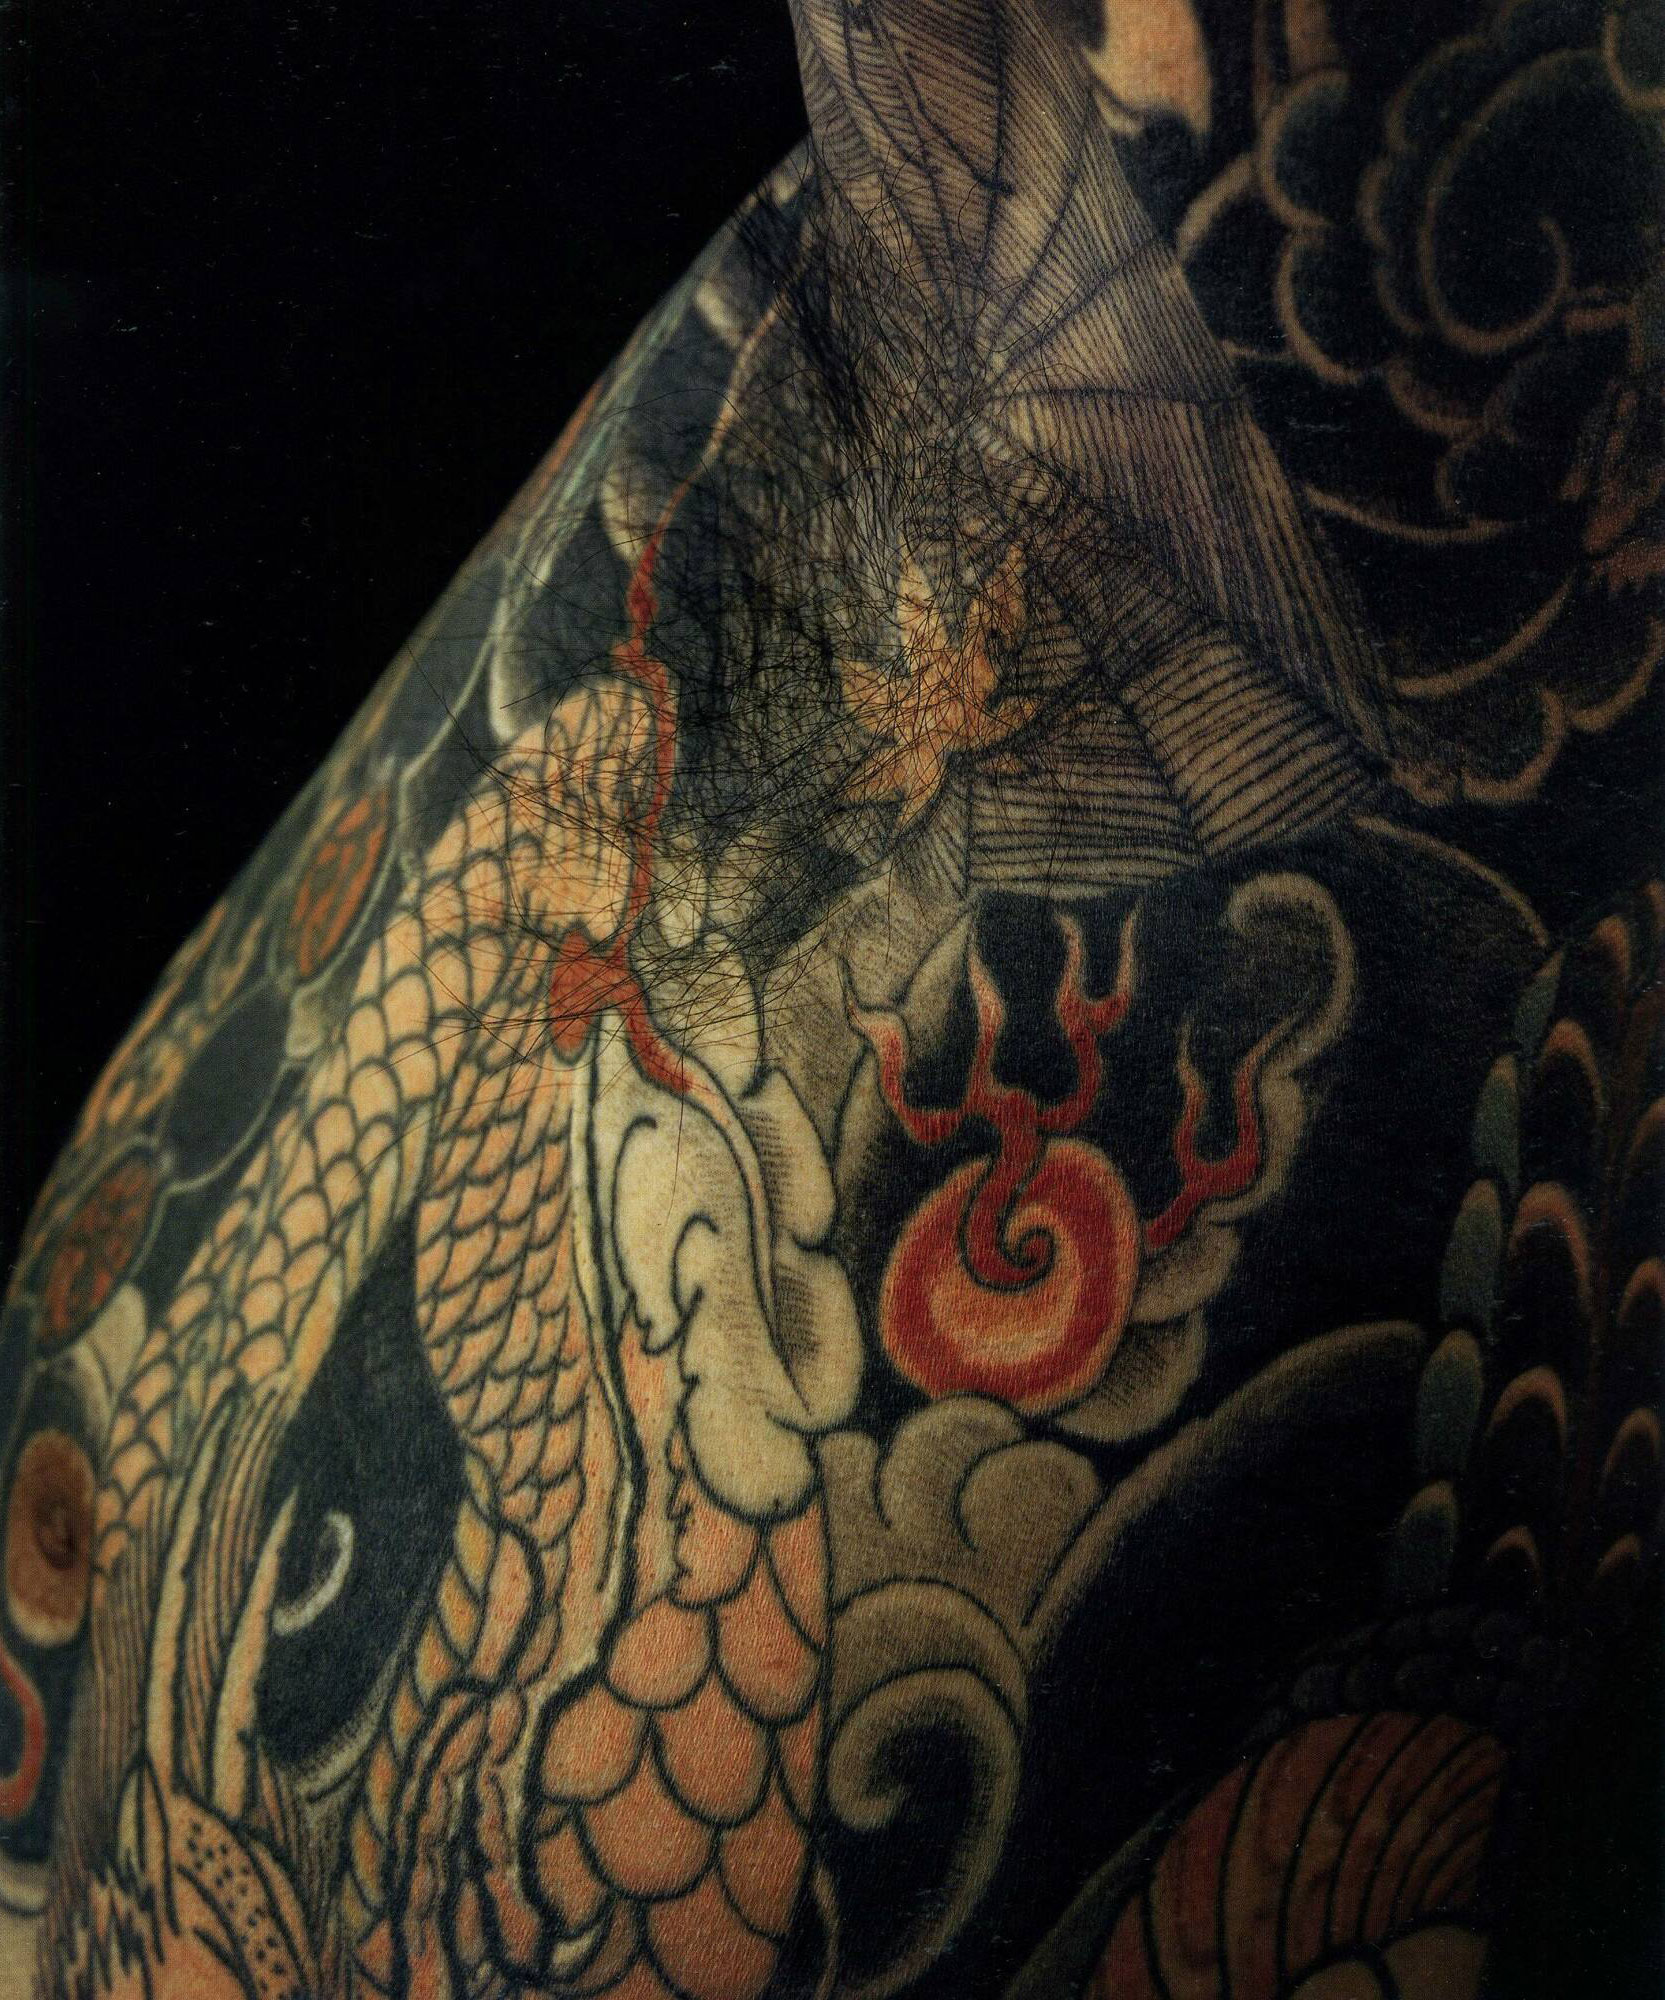 3fbac4d2ef ... Japanese Tattoo Full Body Suit from the Japanese Tattoo book